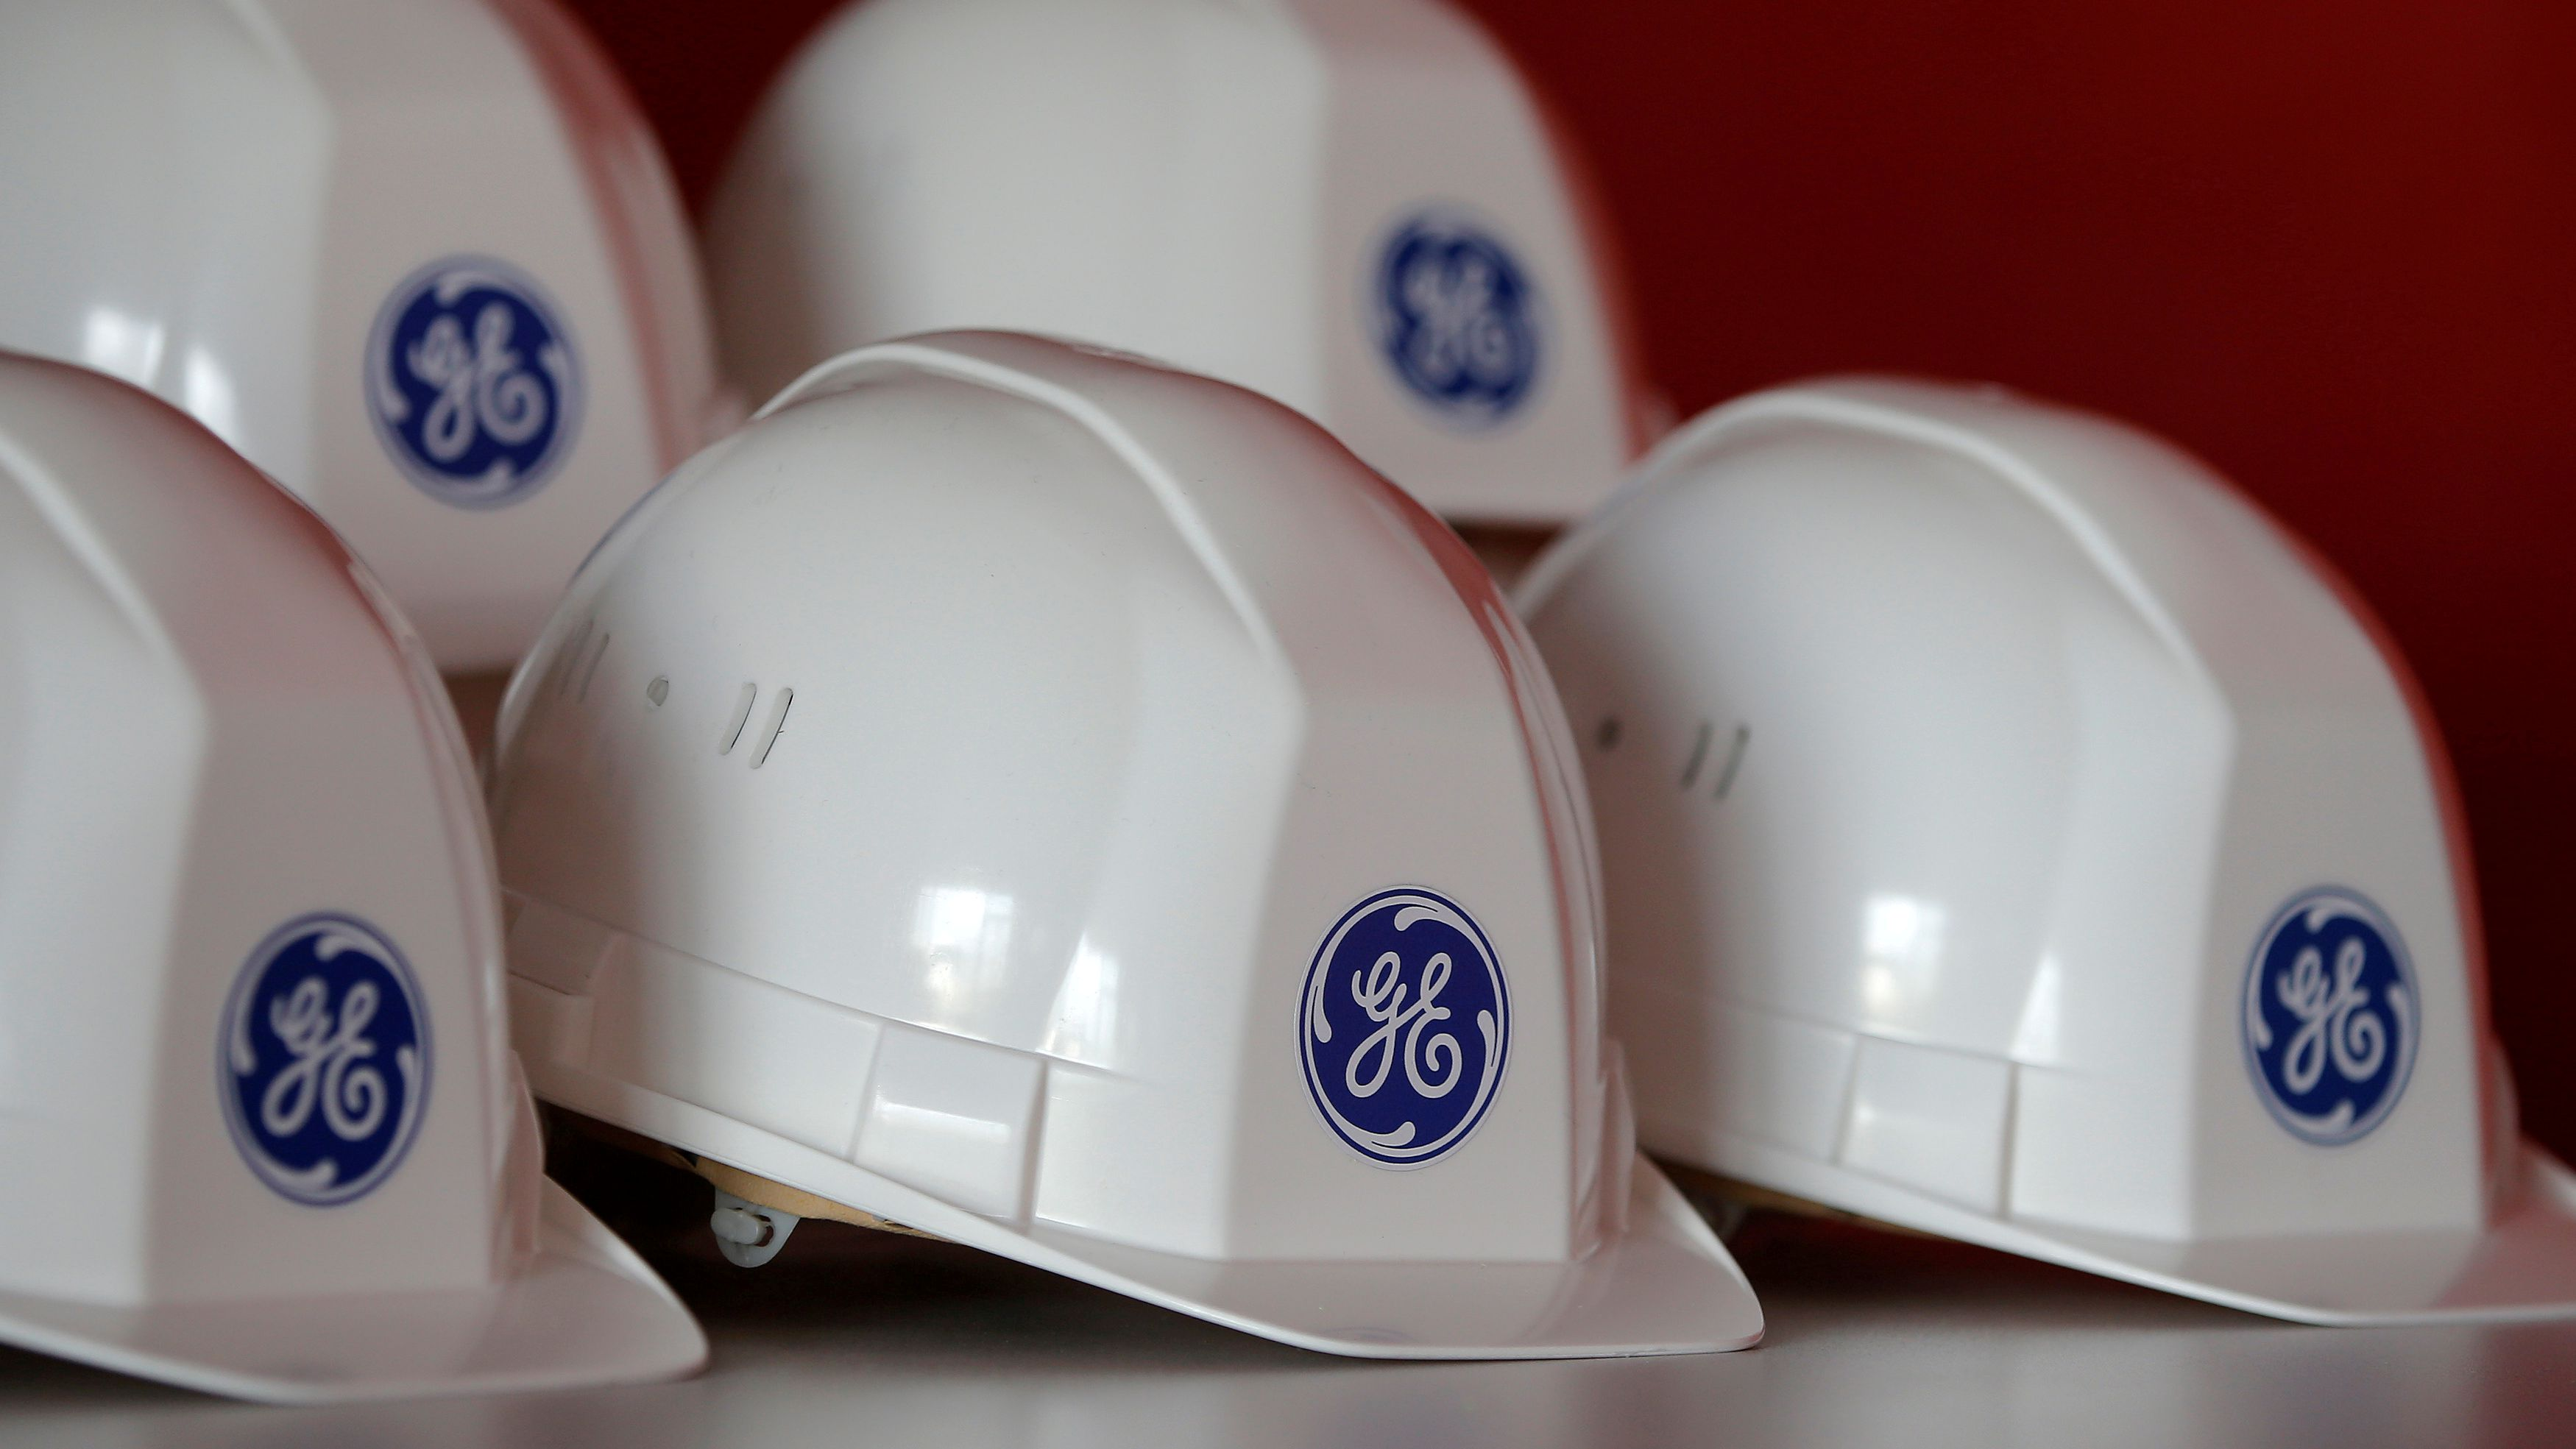 FILE PHOTO: The General Electric logo is pictured on working helmets during a visit at the General Electric offshore wind turbine plant in Montoir-de-Bretagne, near Saint-Nazaire, western France, November 21, 2016. REUTERS/Stephane Mahe/File Photo GLOBAL BUSINESS WEEK AHEAD - SEARCH GLOBAL BUSINESS 17 APR FOR ALL IMAGES